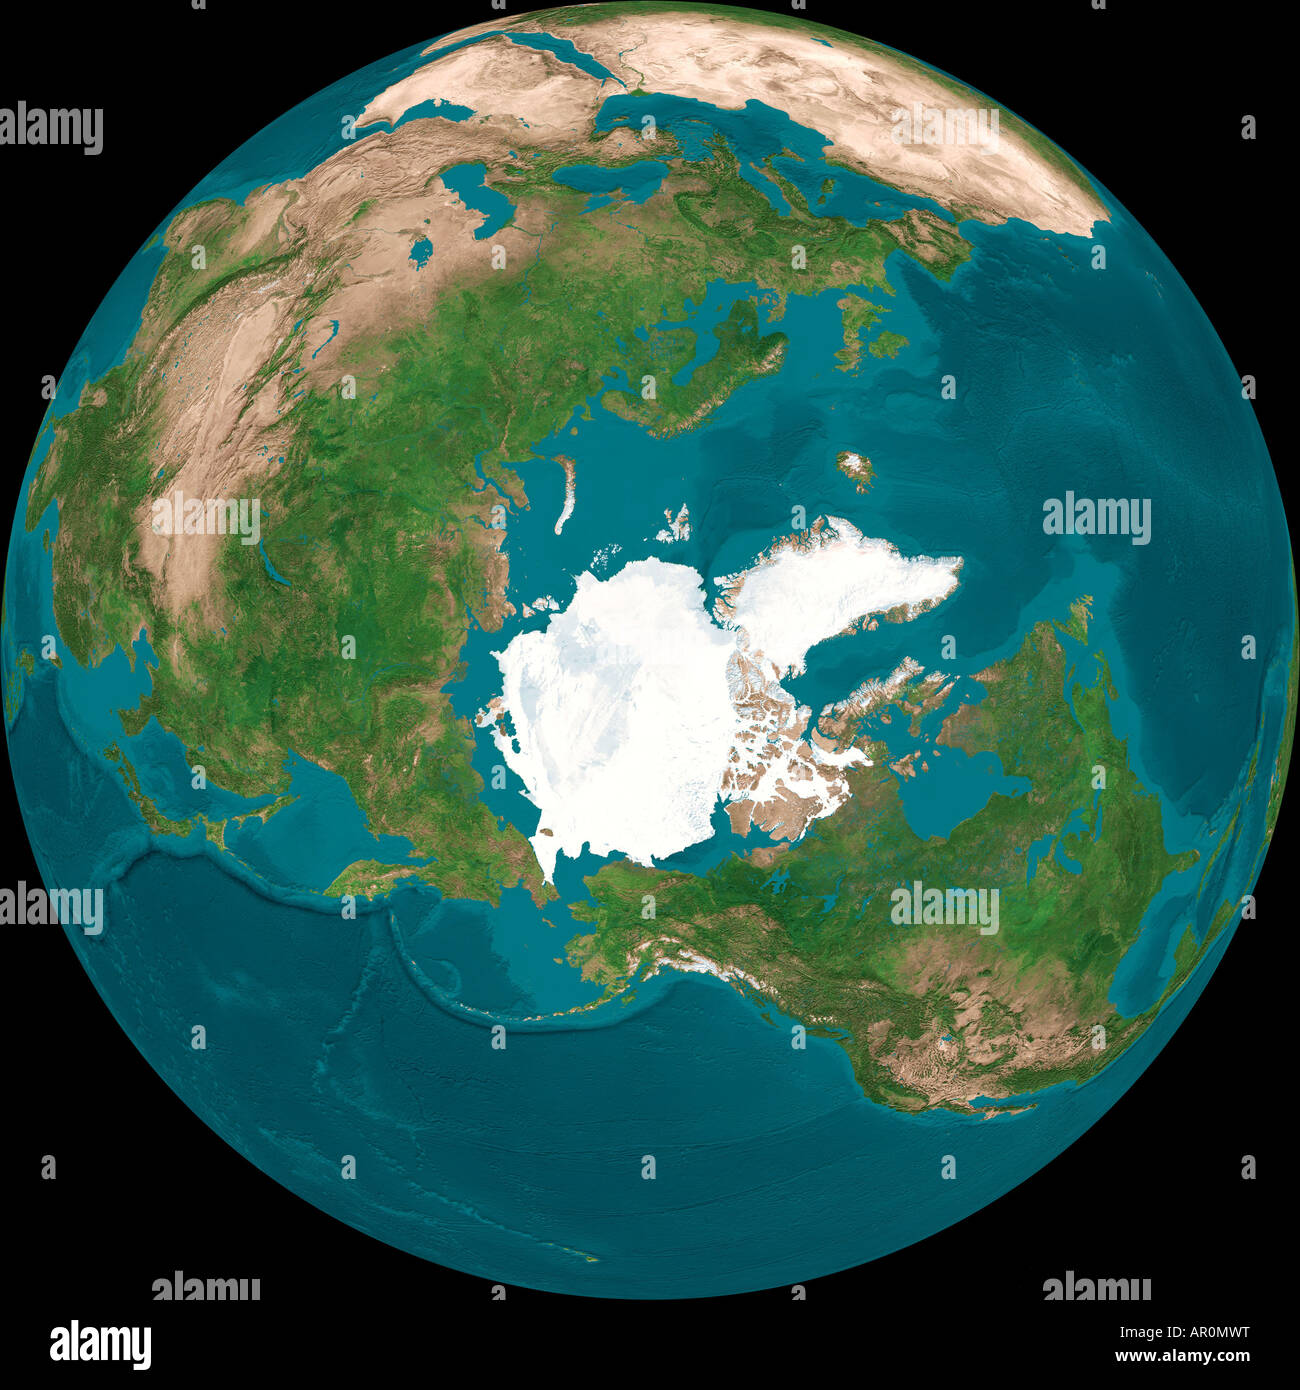 Aerial Globe of Earth From Top of the World Stock Photo: 15900275